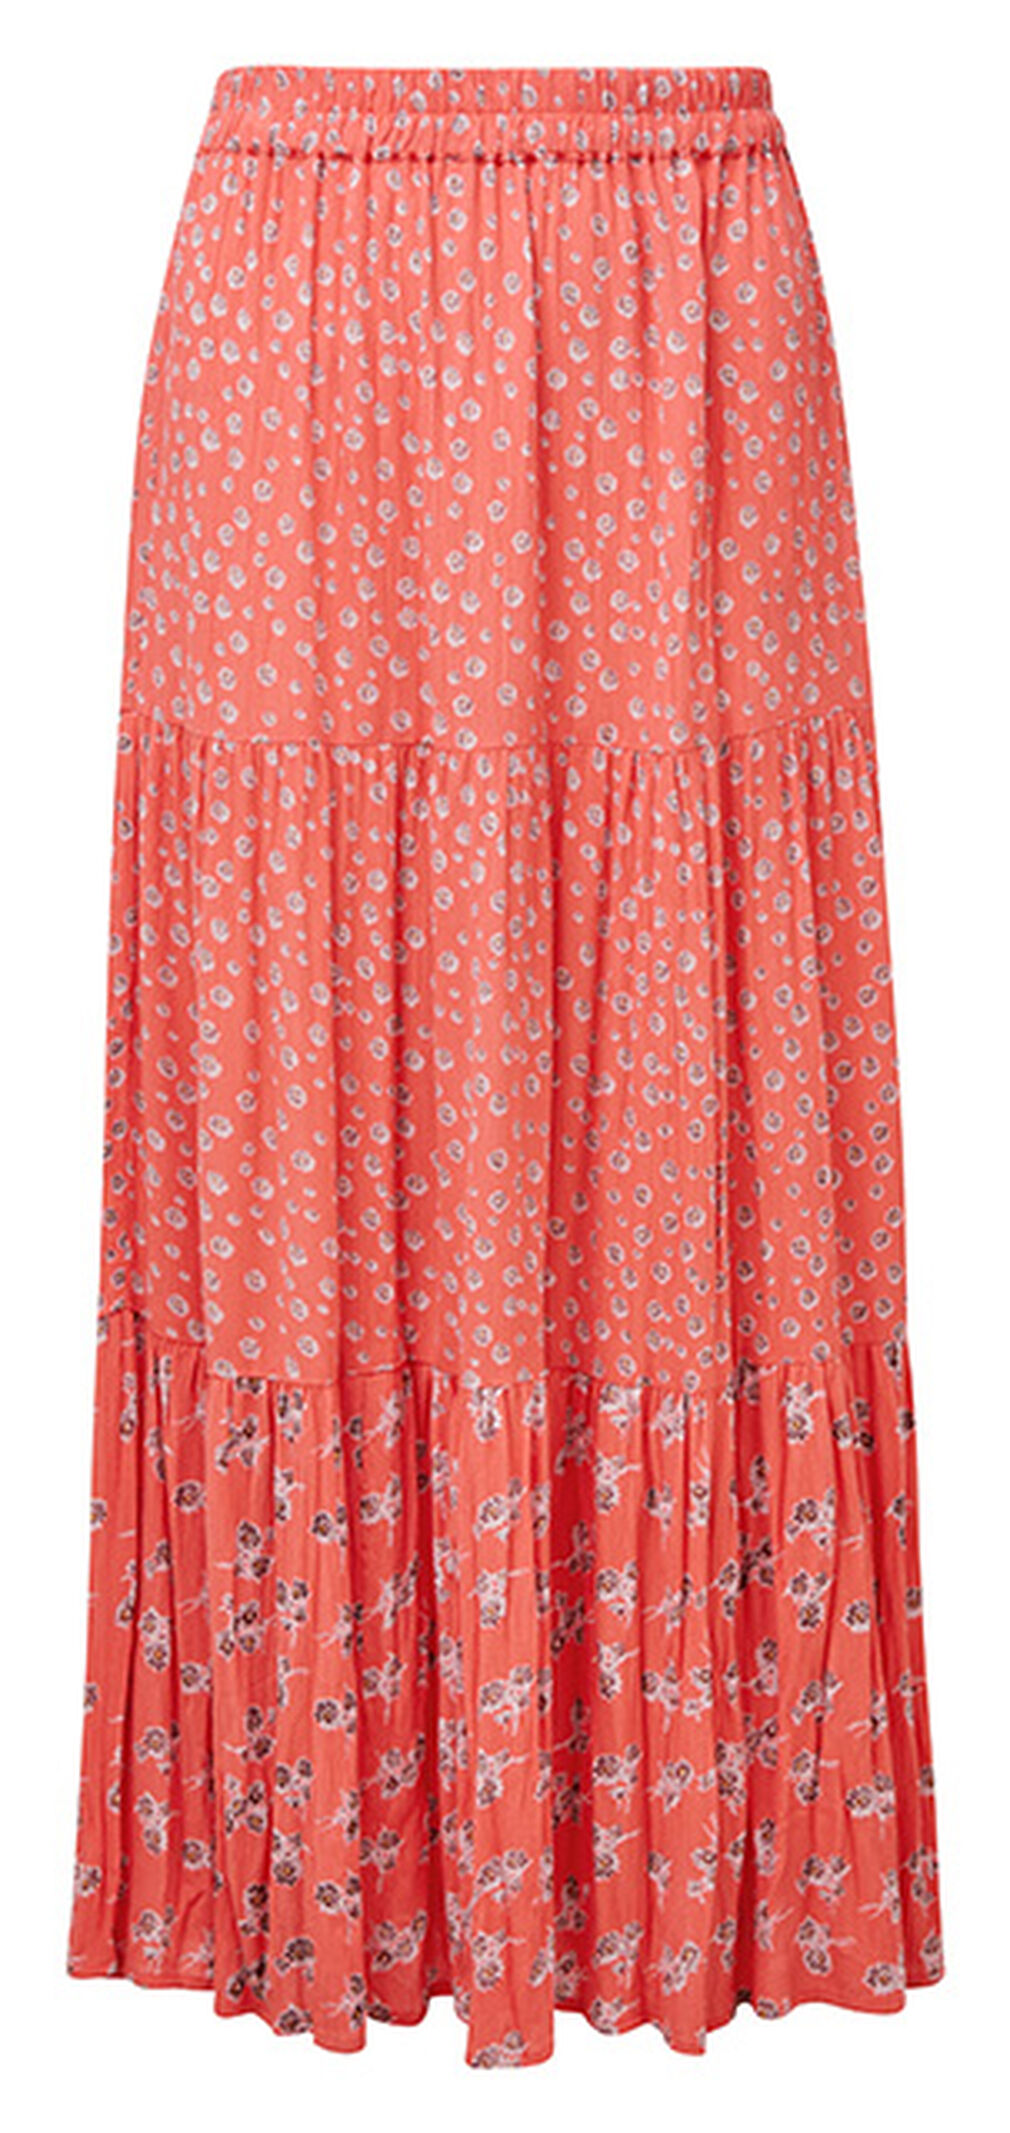 The Blissful Blouse | Tiered Floral Skirt | By Cotton Traders